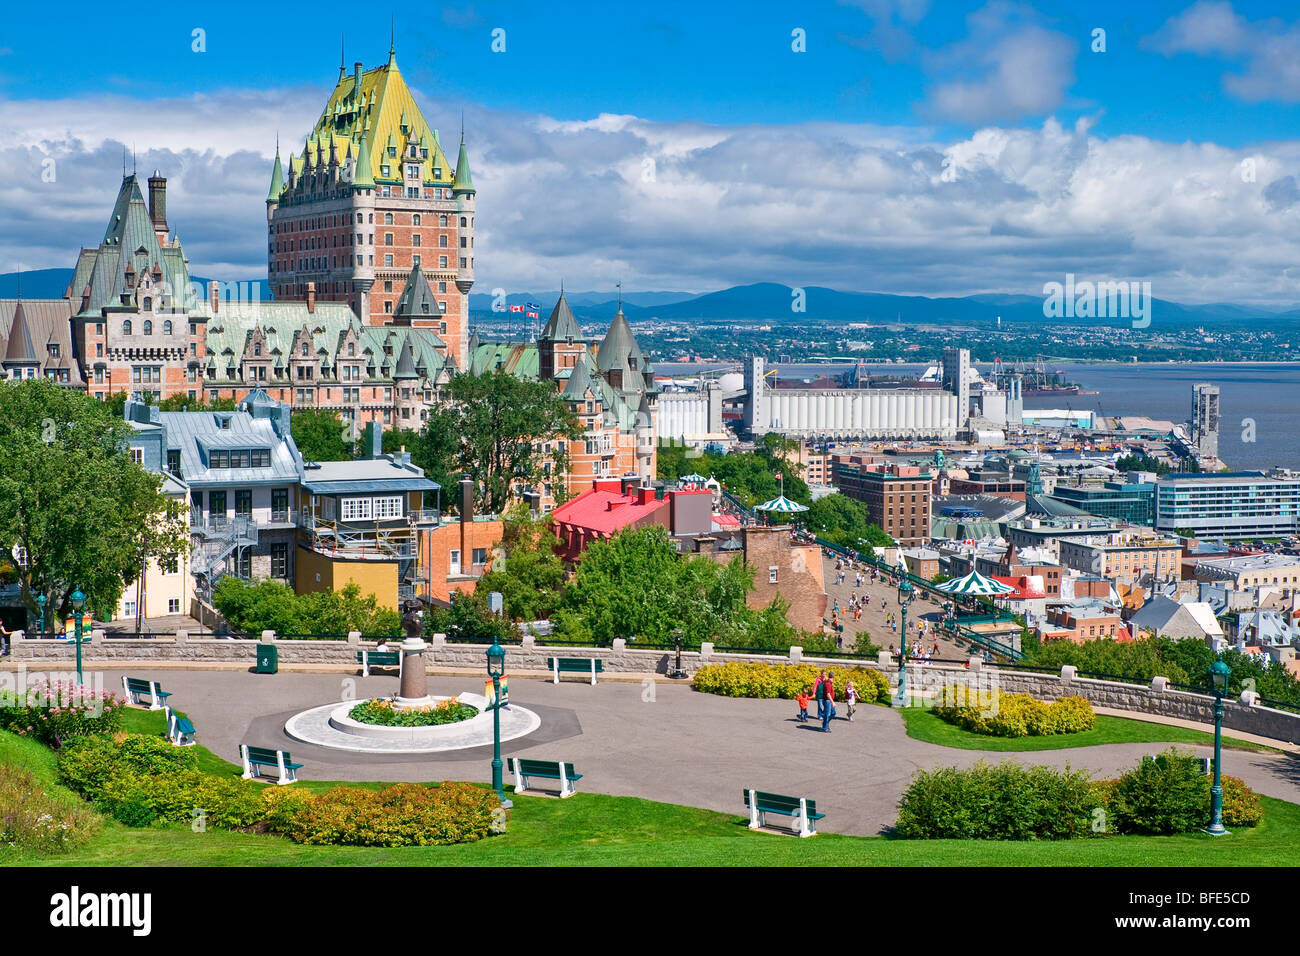 Cityscape of Old Quebec City with Chateau Frontenac in the distance and Cap Diamant park in the foreground - Stock Image